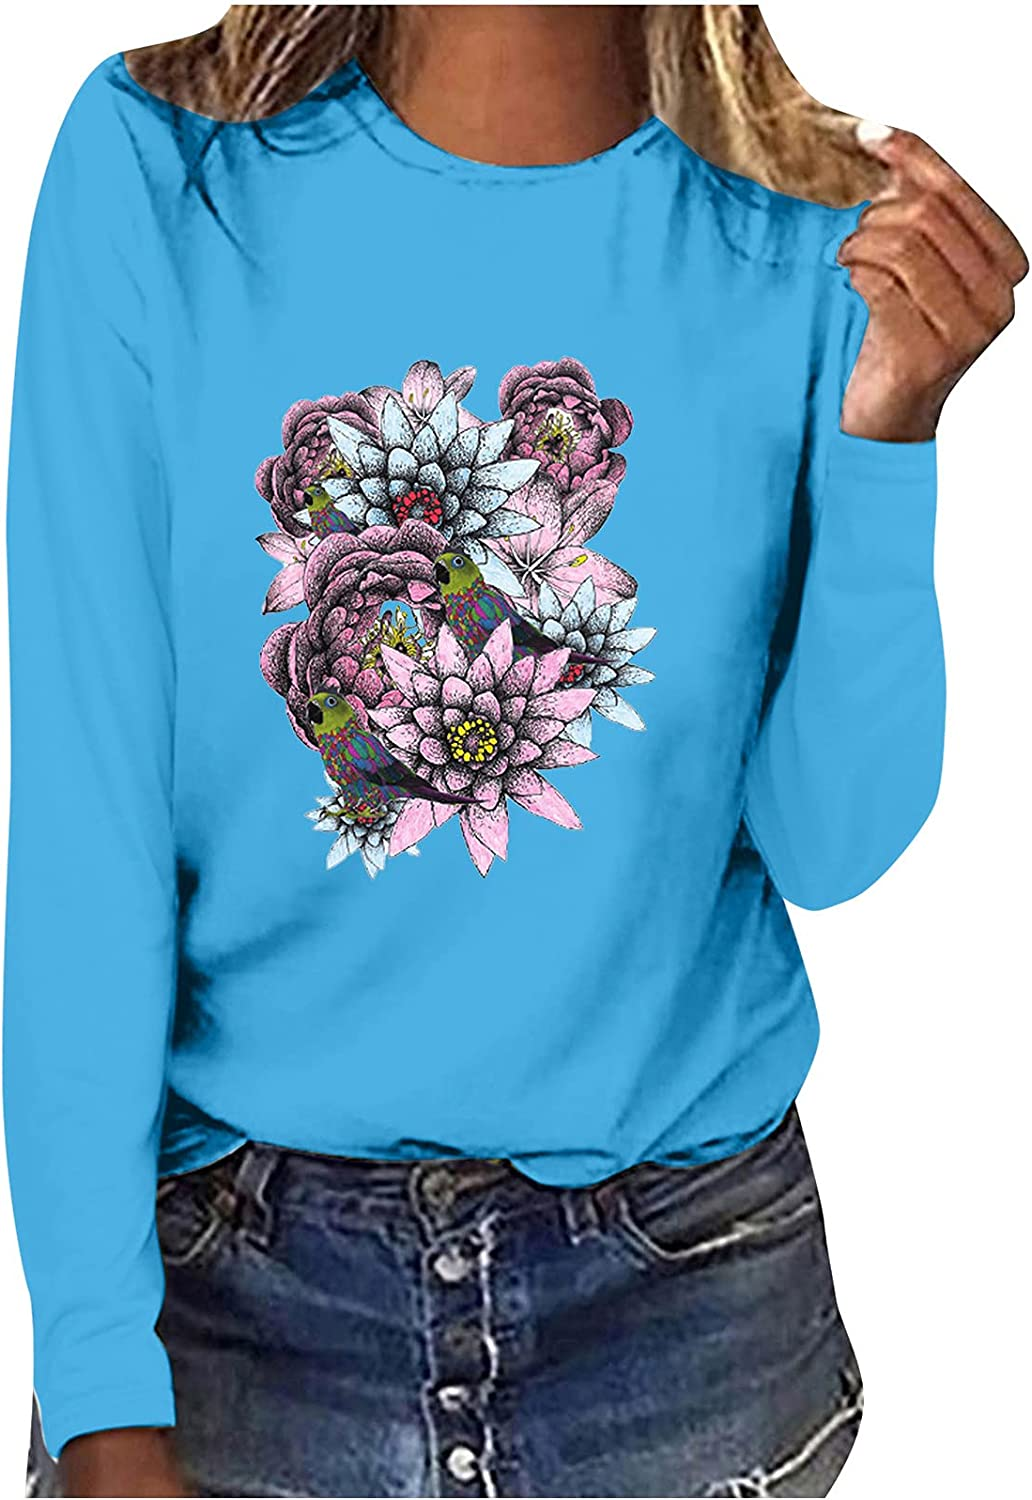 Women Long-Sleeve Floral Print Blouse Tops Casual Loose O Neck Fit Shirts Comfy Sweatshirt Tops